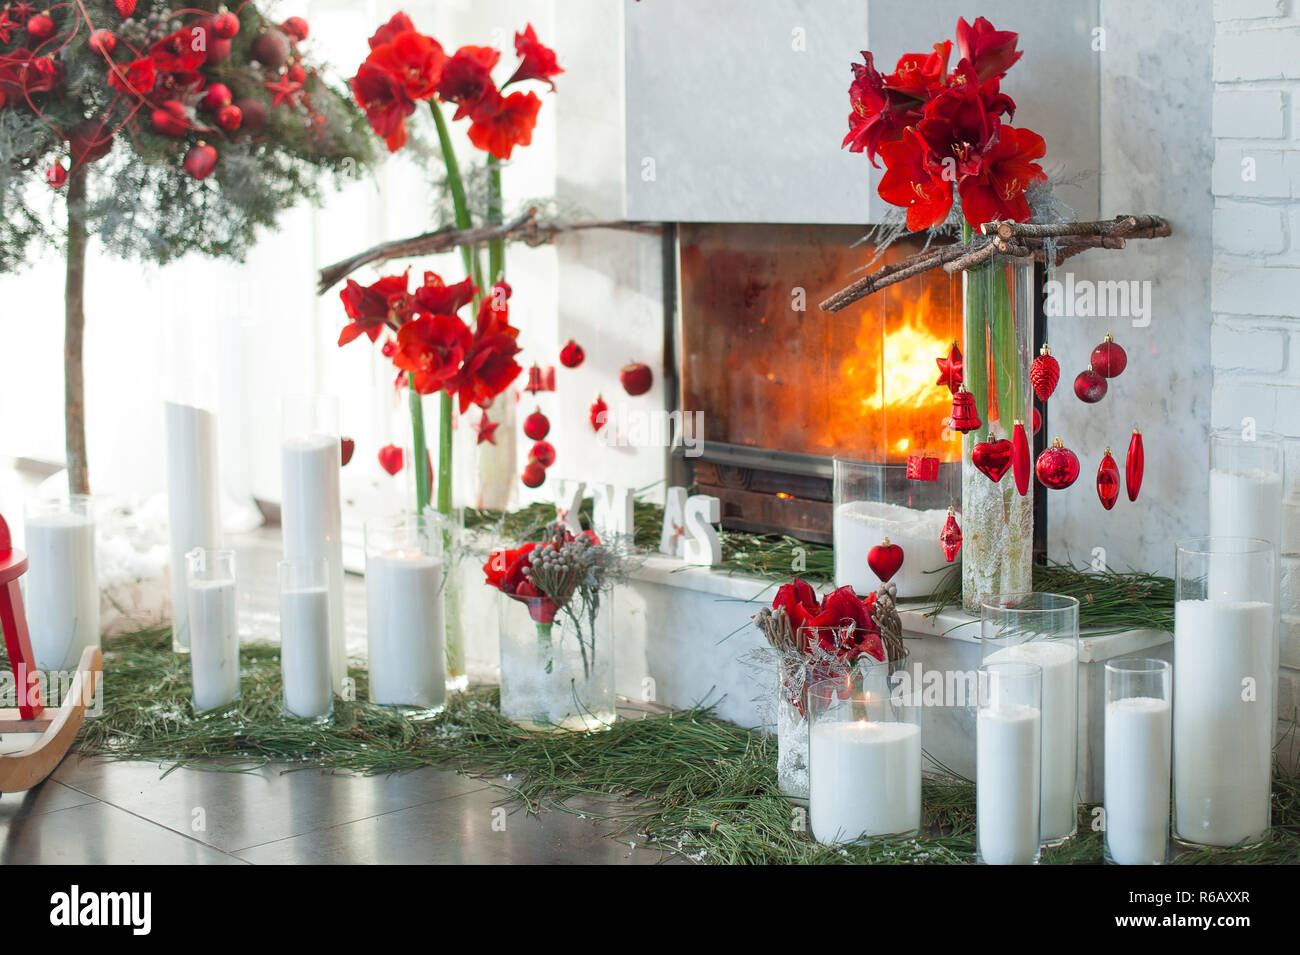 Fireplace Decor With Candles And Red Flowers Stock Photo